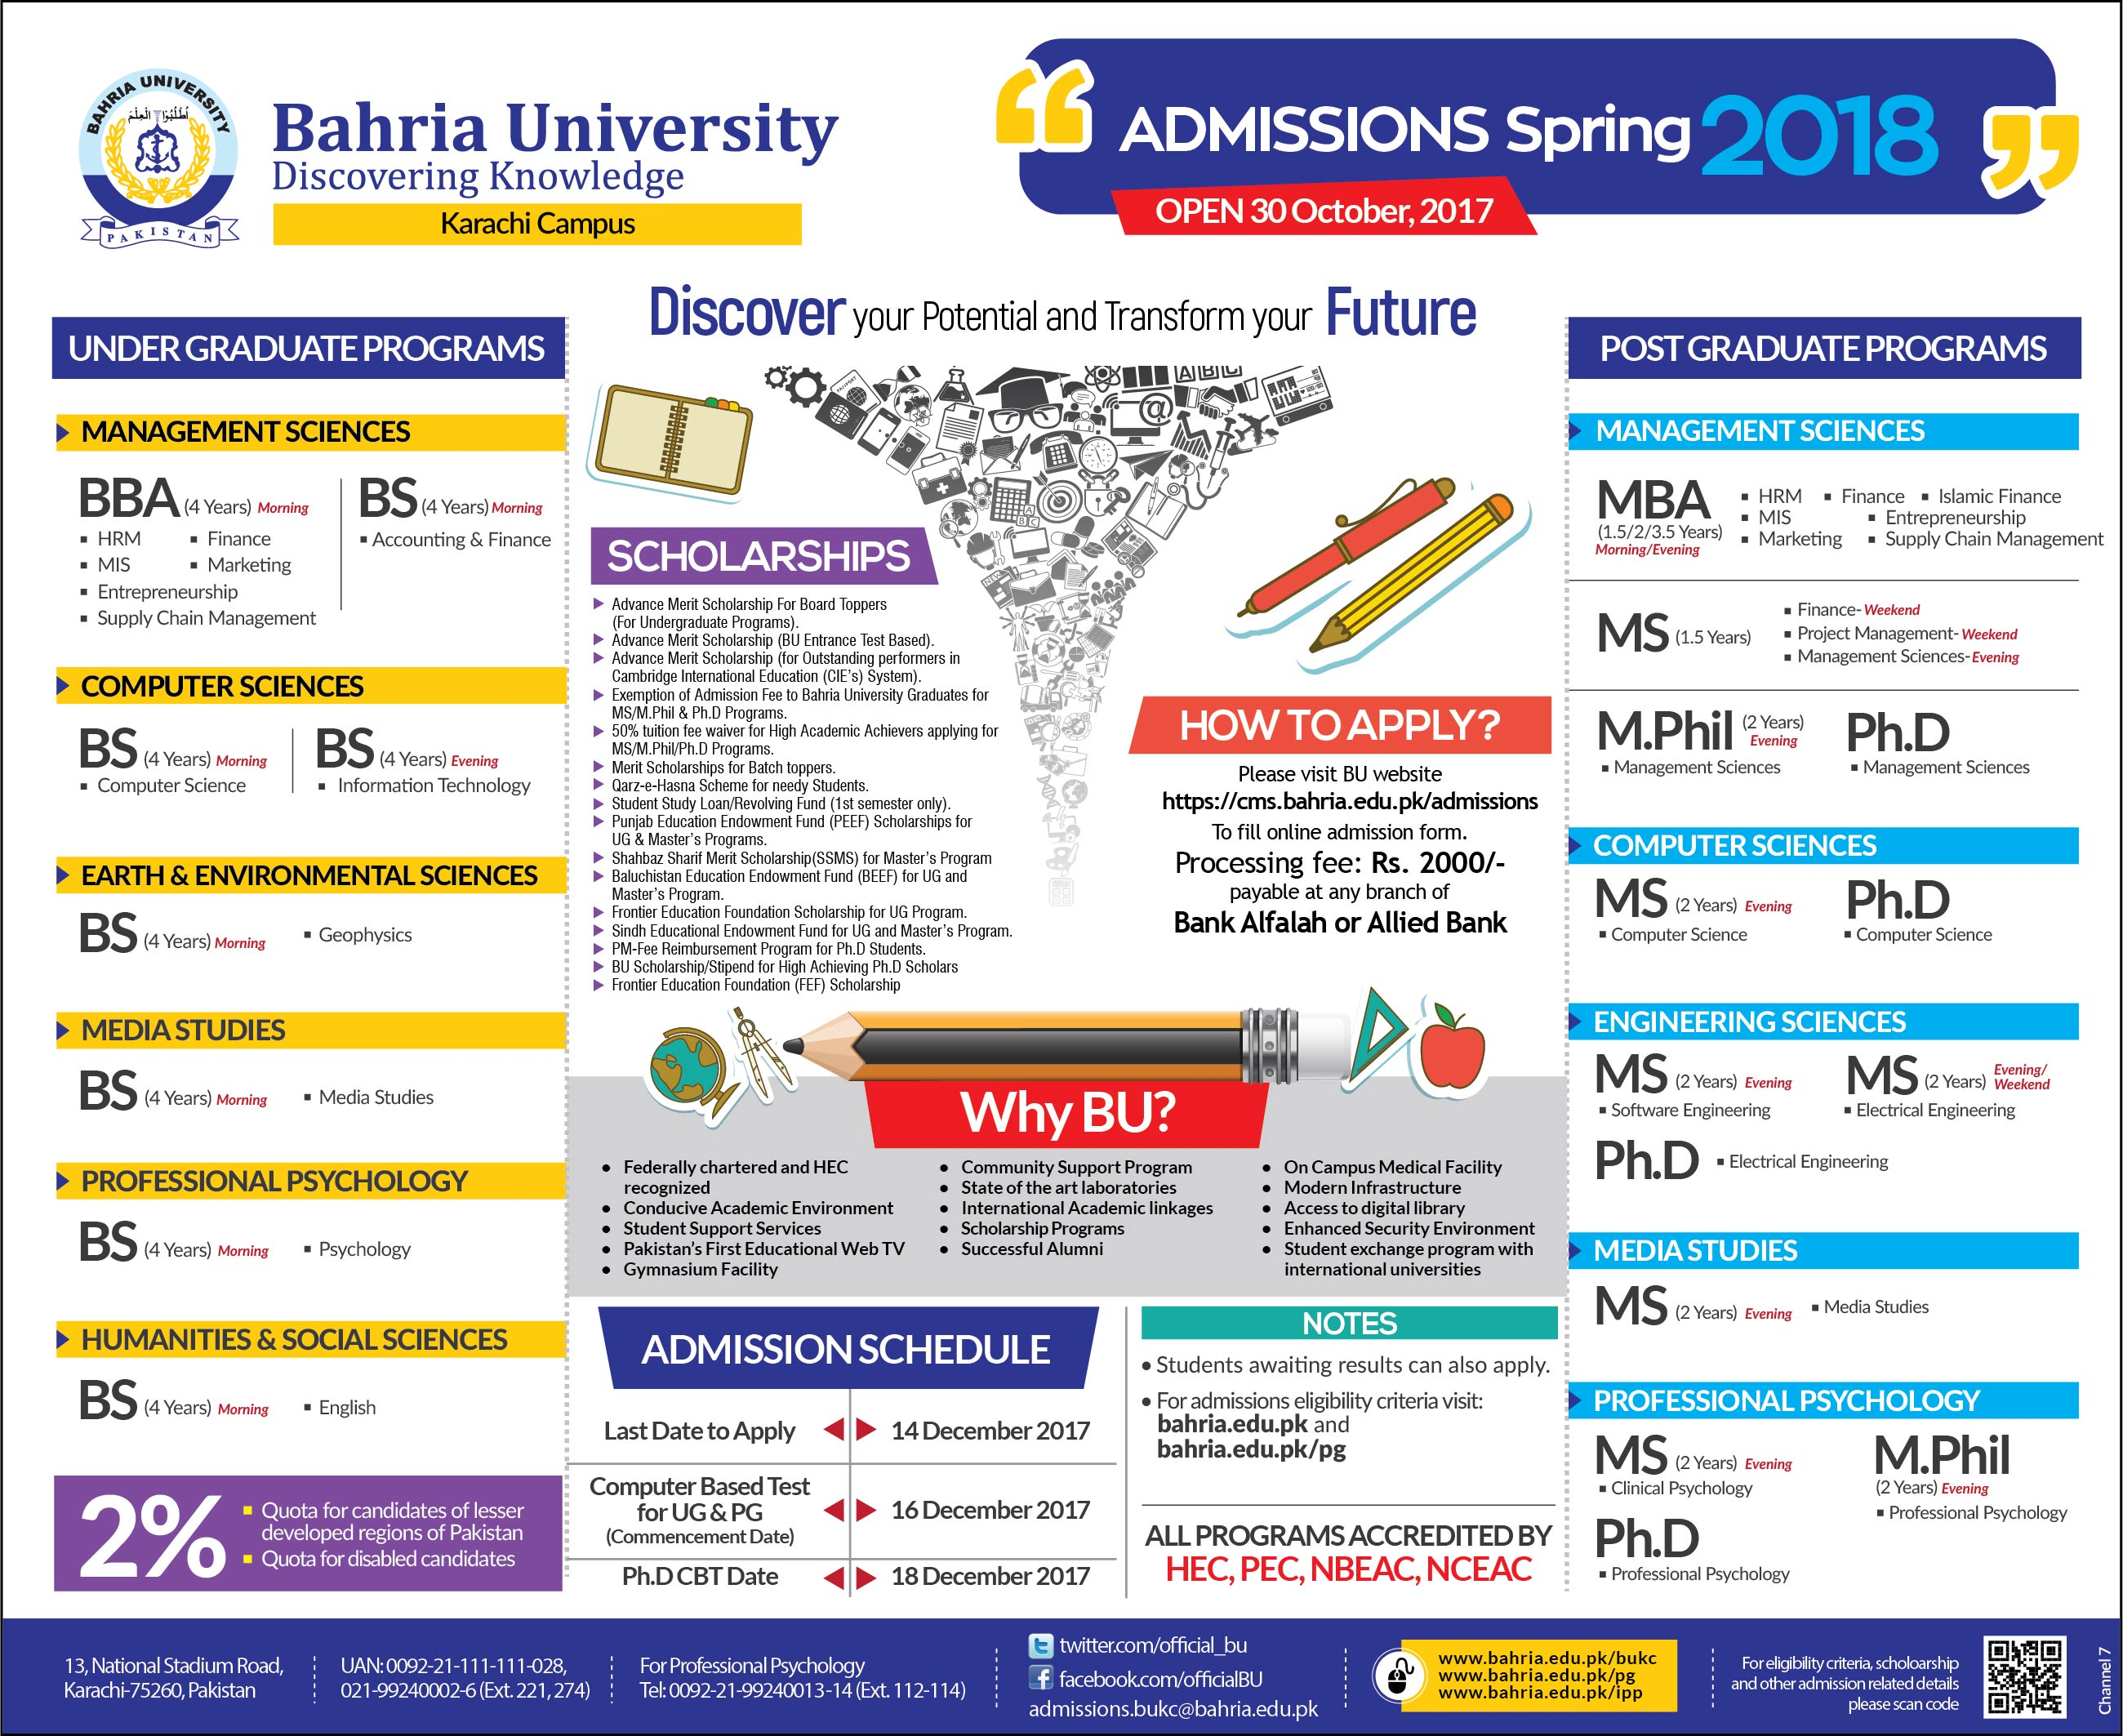 Admissions Open Spring 2018 – Institute of Professional Psychology